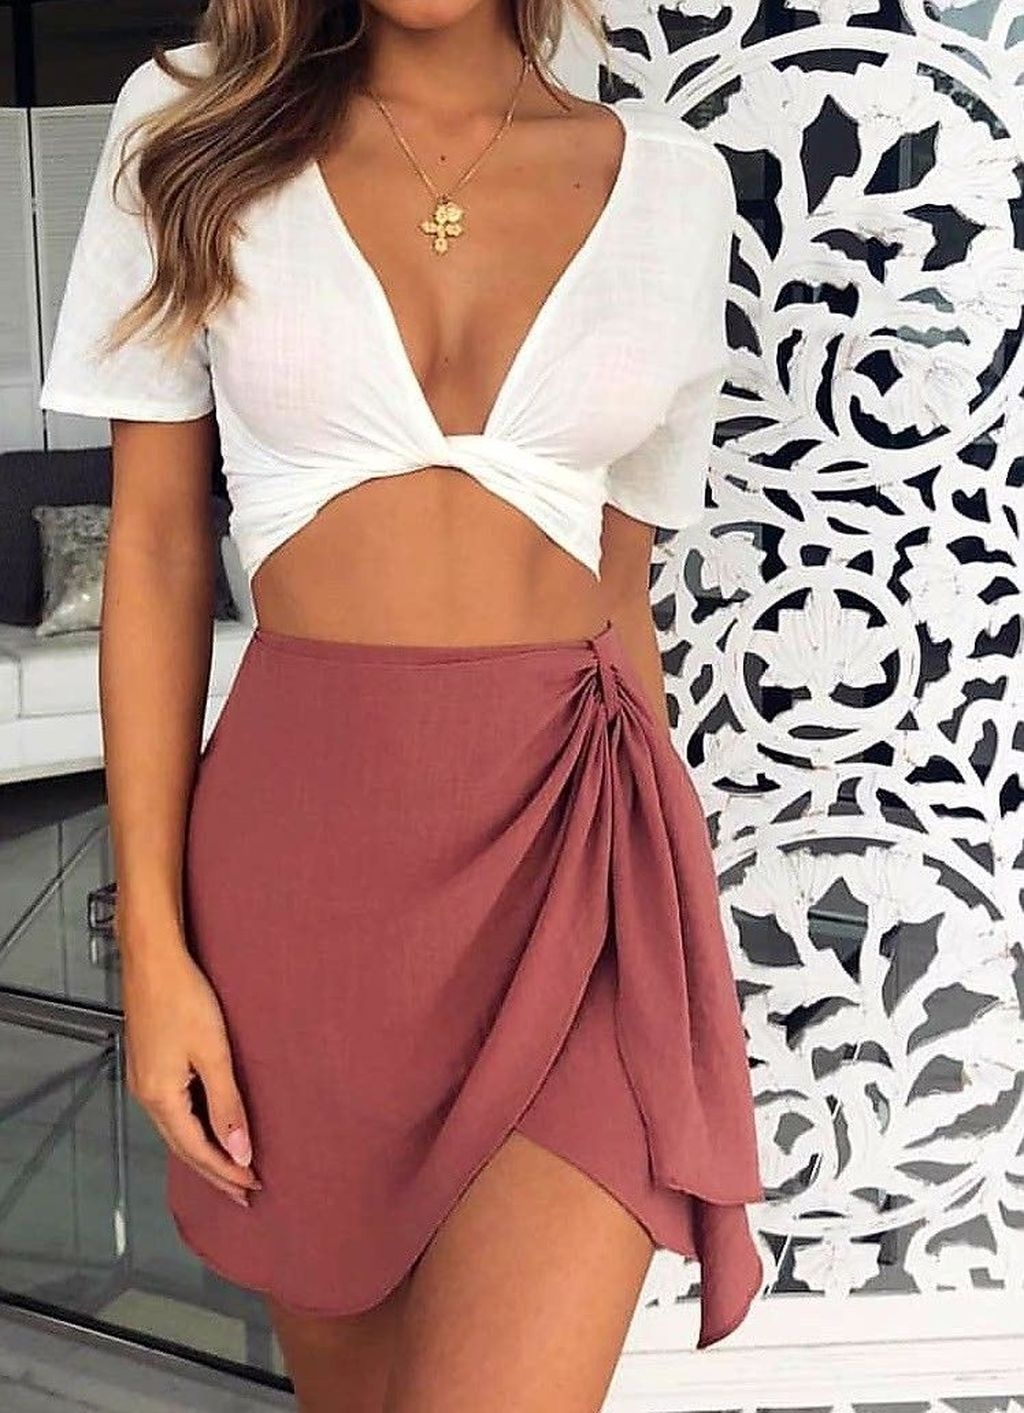 ee7bbf23438e6 Nice 35 Cute Girly Fashion Outfits Ideas For Summer. More at https://